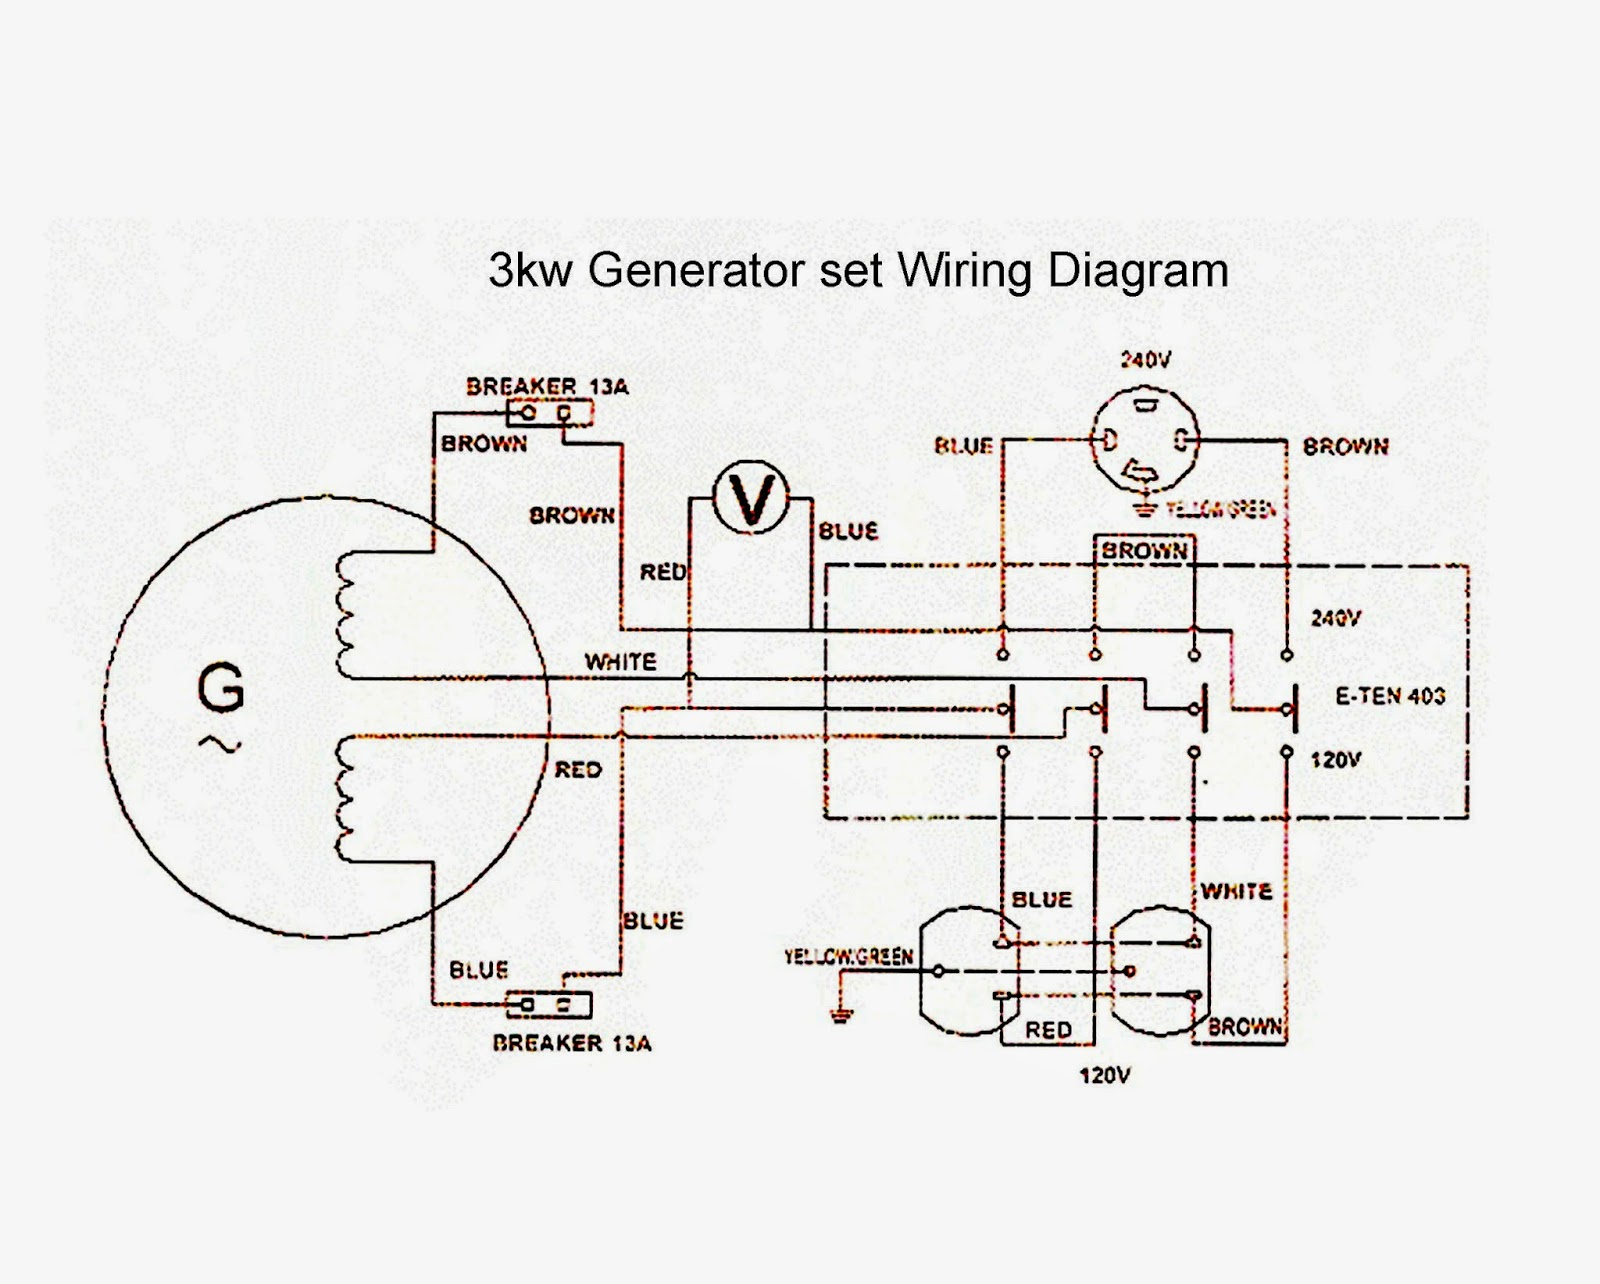 hight resolution of onan emerald generator wiring diagram free download wiring library rh 95 skriptoase de 4kw onan generator wiring diagram generator onan wiring circuit